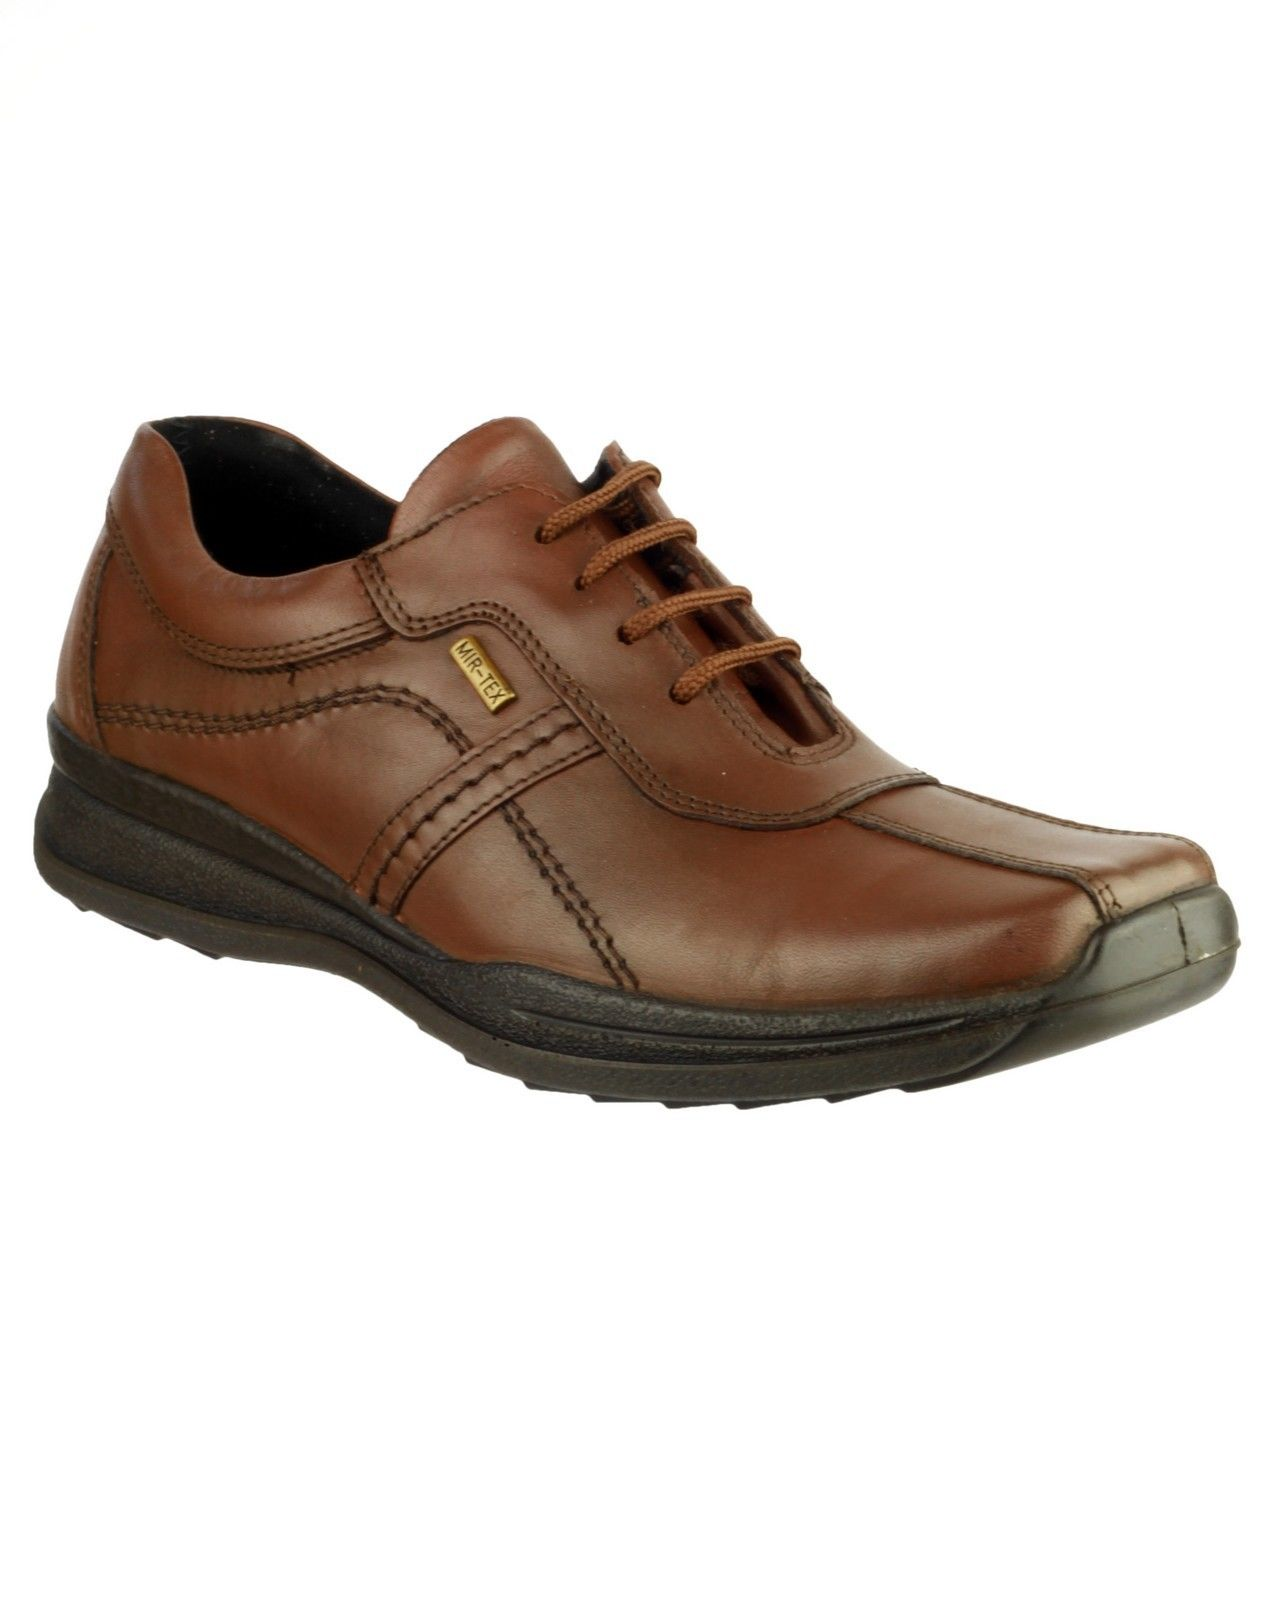 Cotswold - Brown - Leather Lace-Up Mens Shoes - Size 11 28B0J